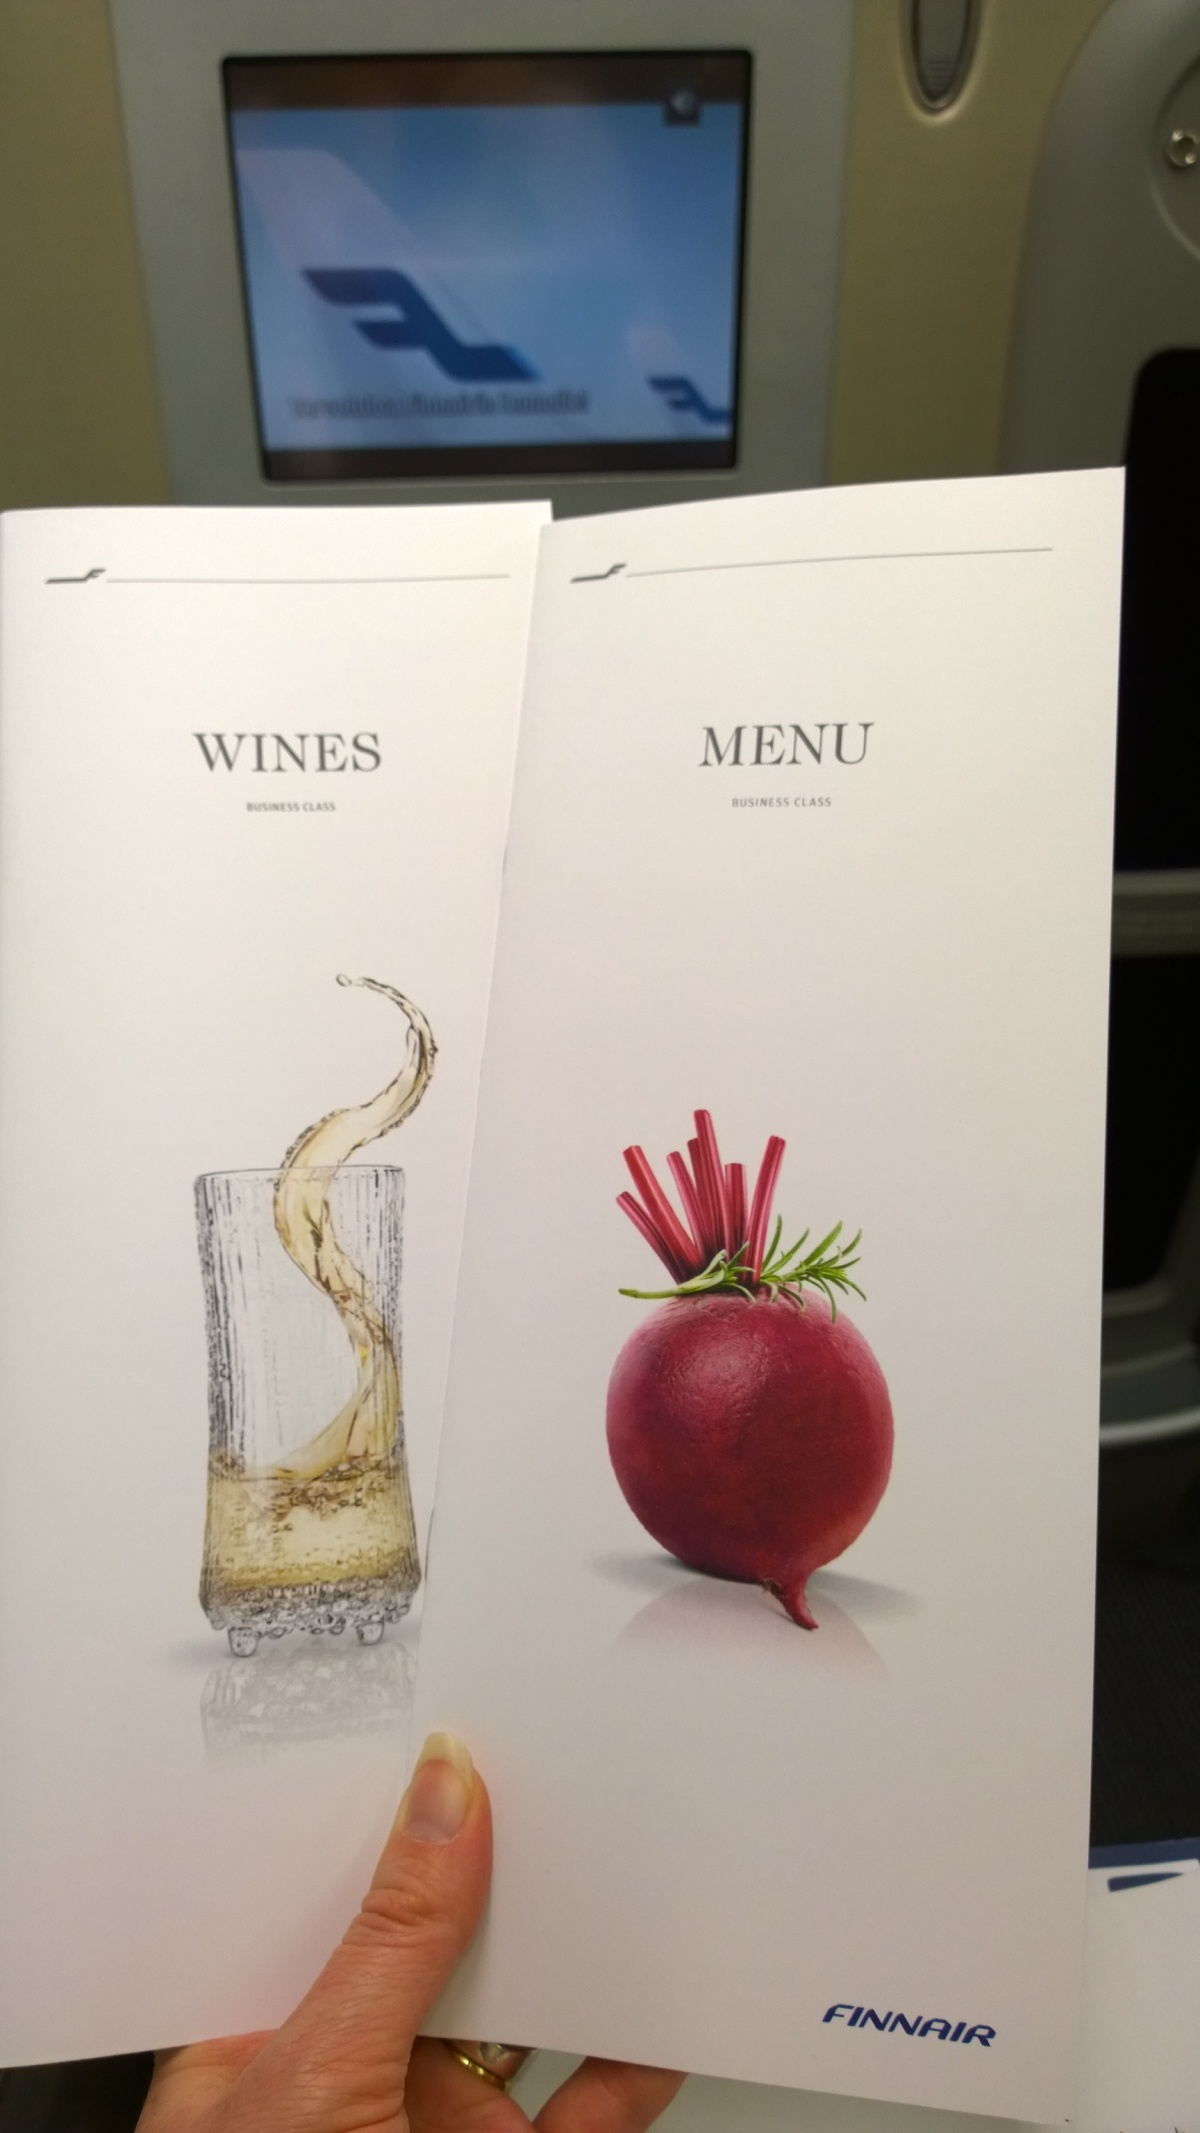 Winelist and menu